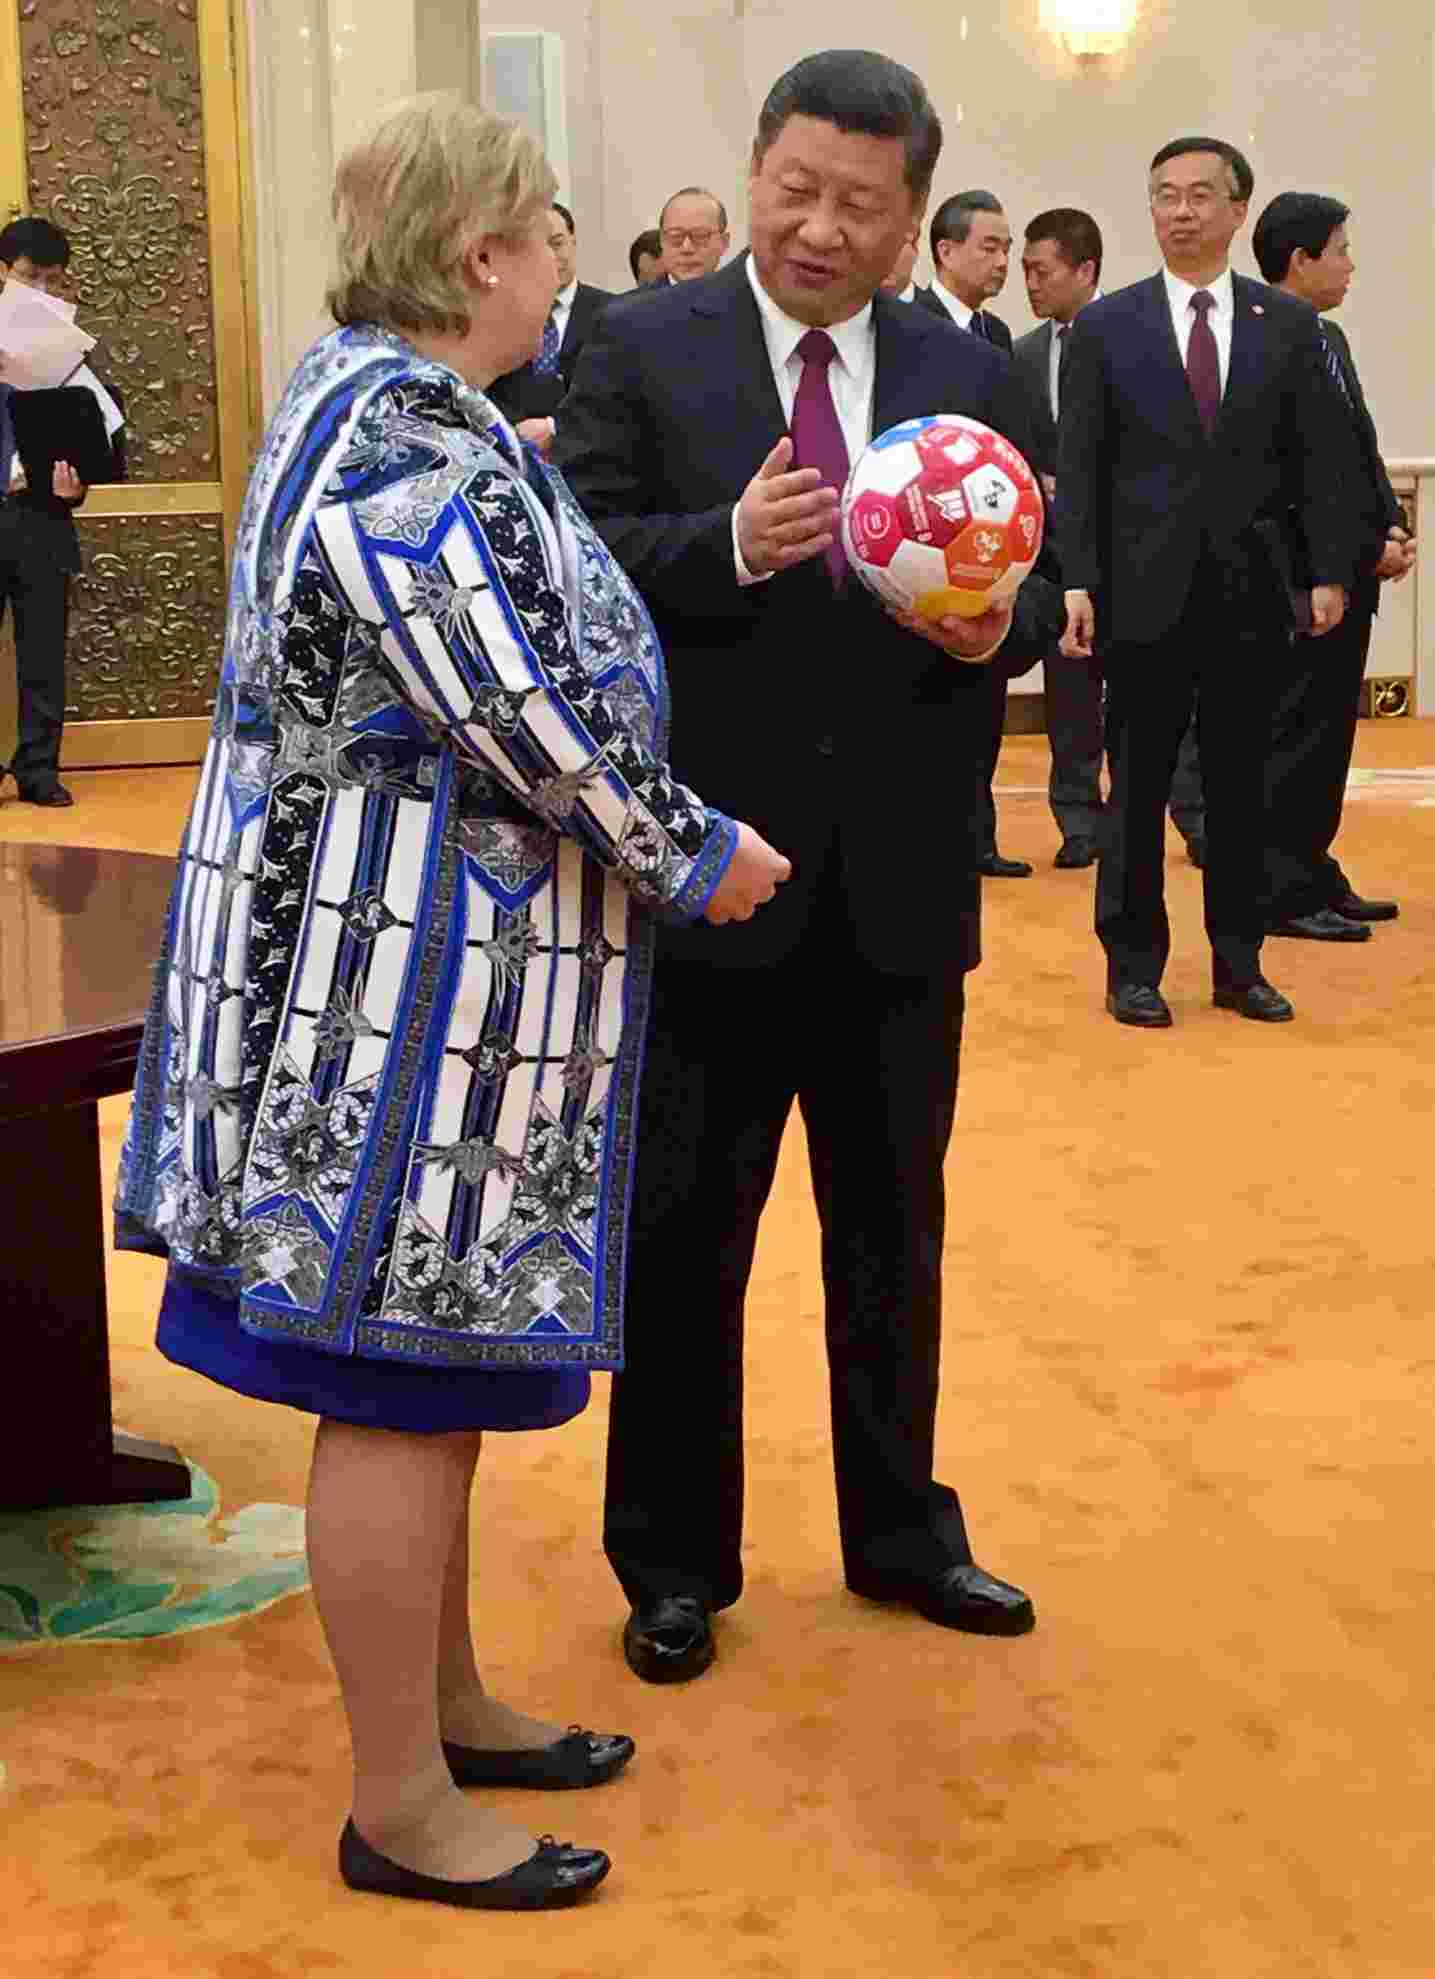 Prime Minister Solberg Gave President Xi a football featuring the SDG icons. Photo credit: Norwegian FM